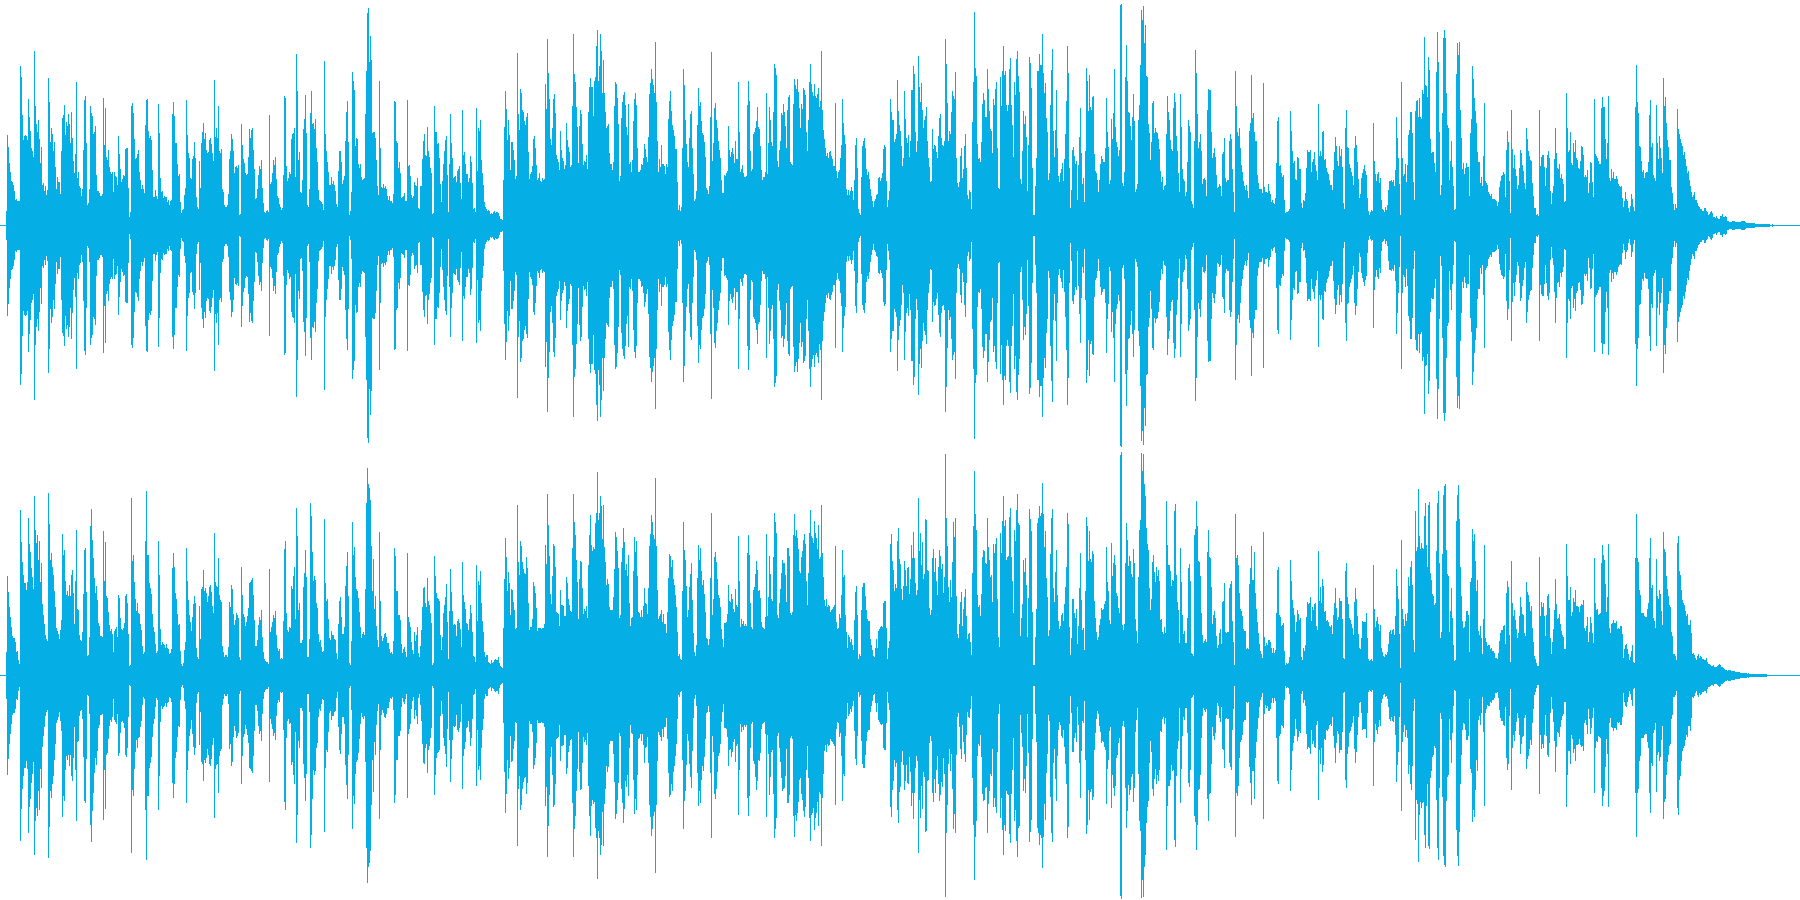 Tomato-themed songs's reproduced waveform